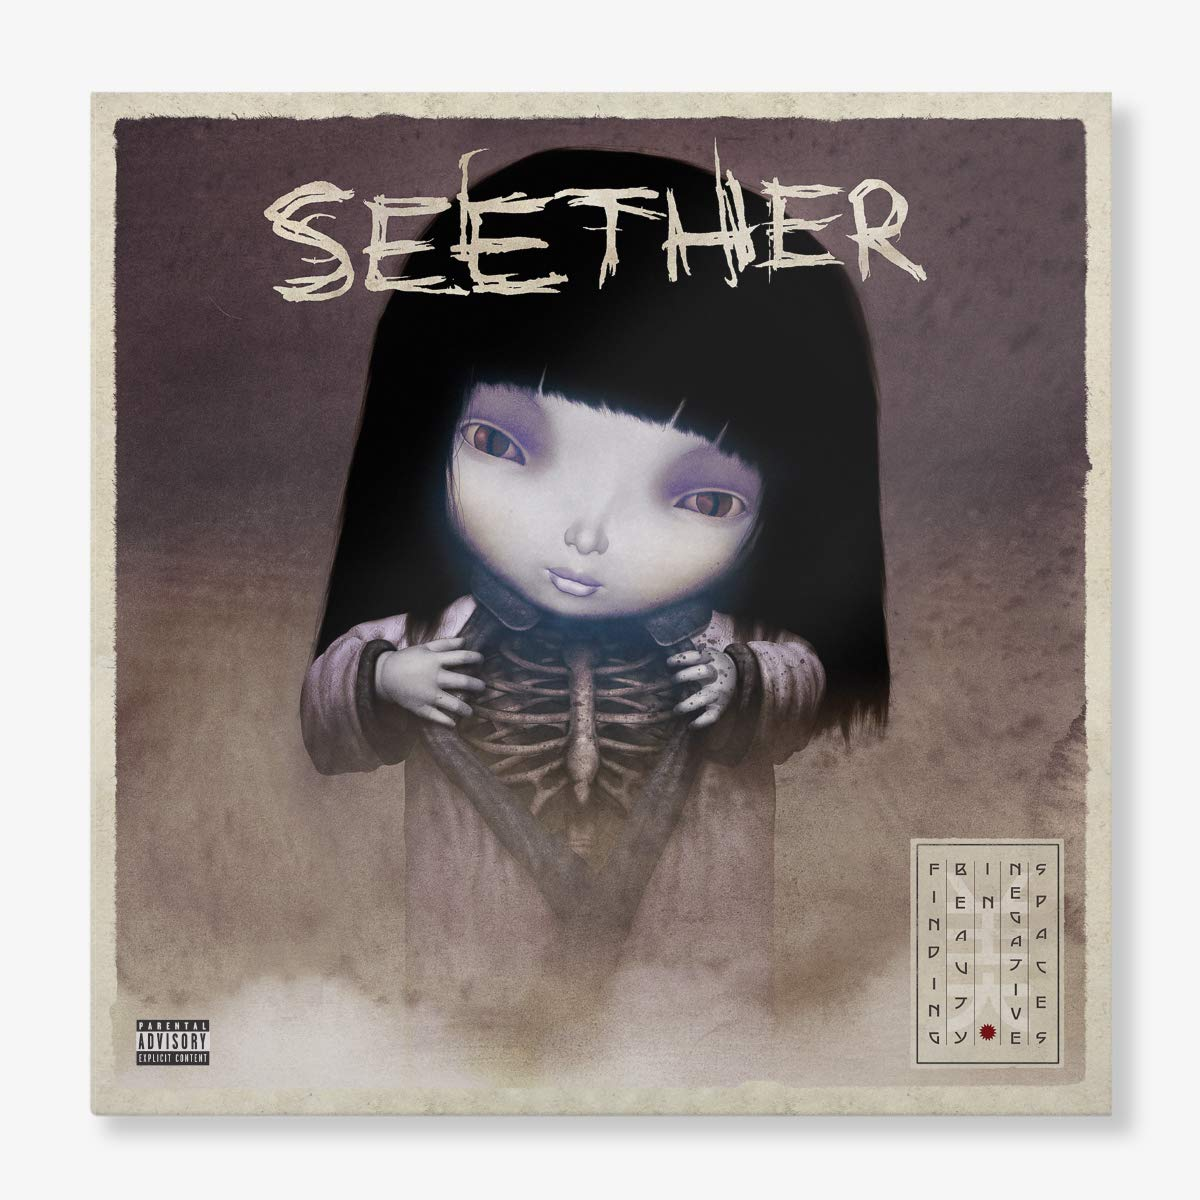 Seether - Finding Beauty In Negative Spaces [Opaque Lavender 2LP]